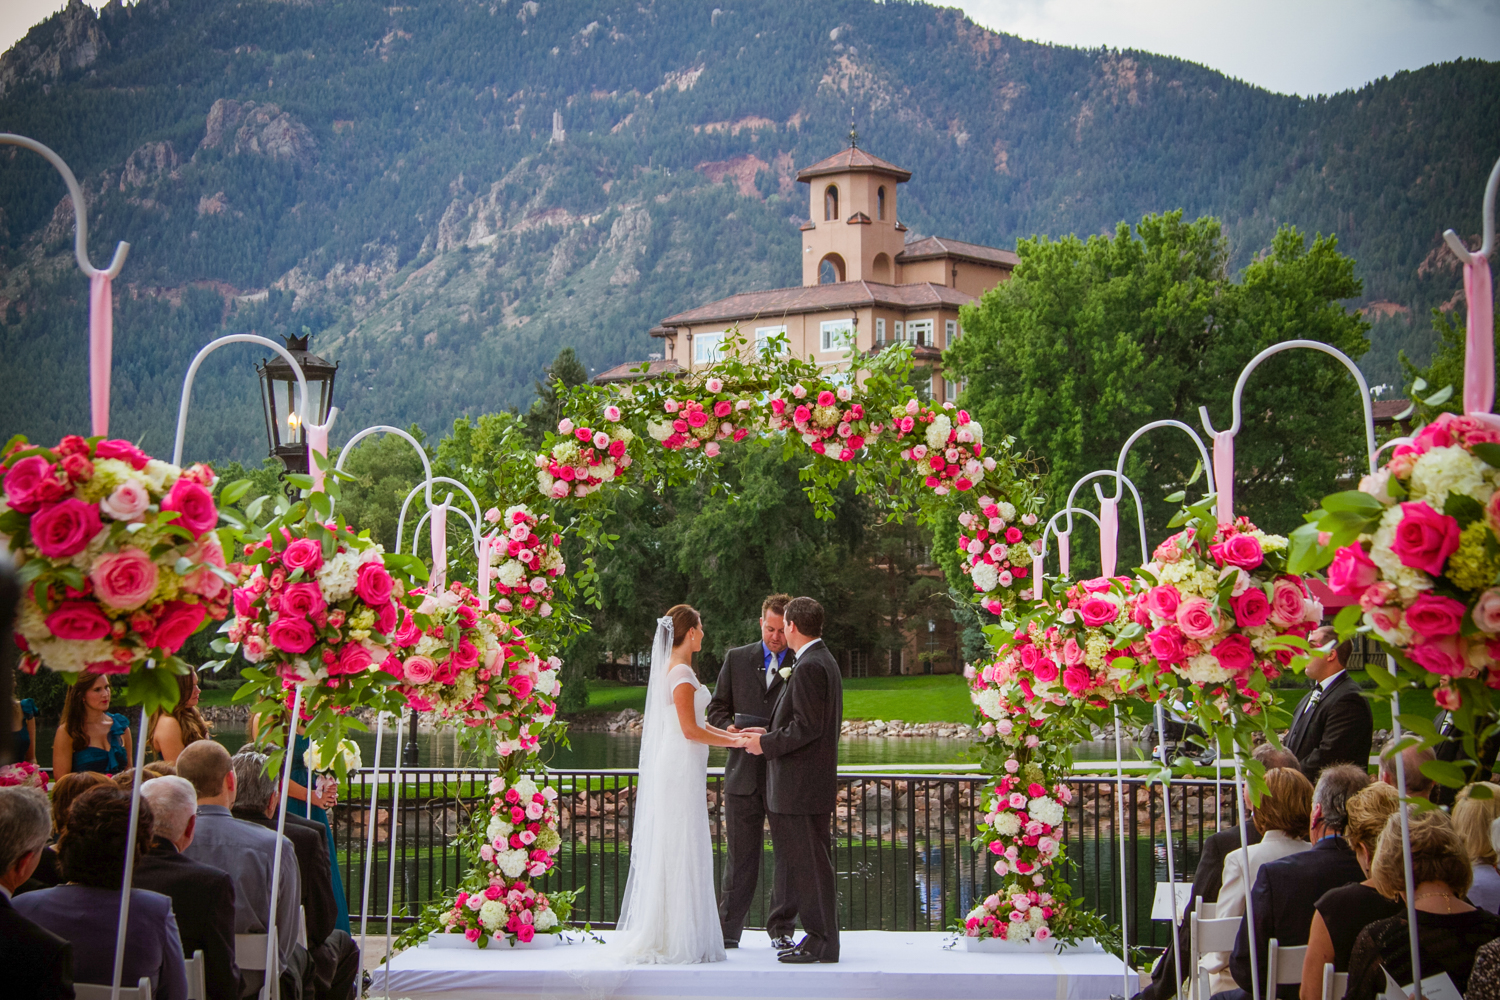 PaigeEden_Weddings_Broadmoor_024.jpg